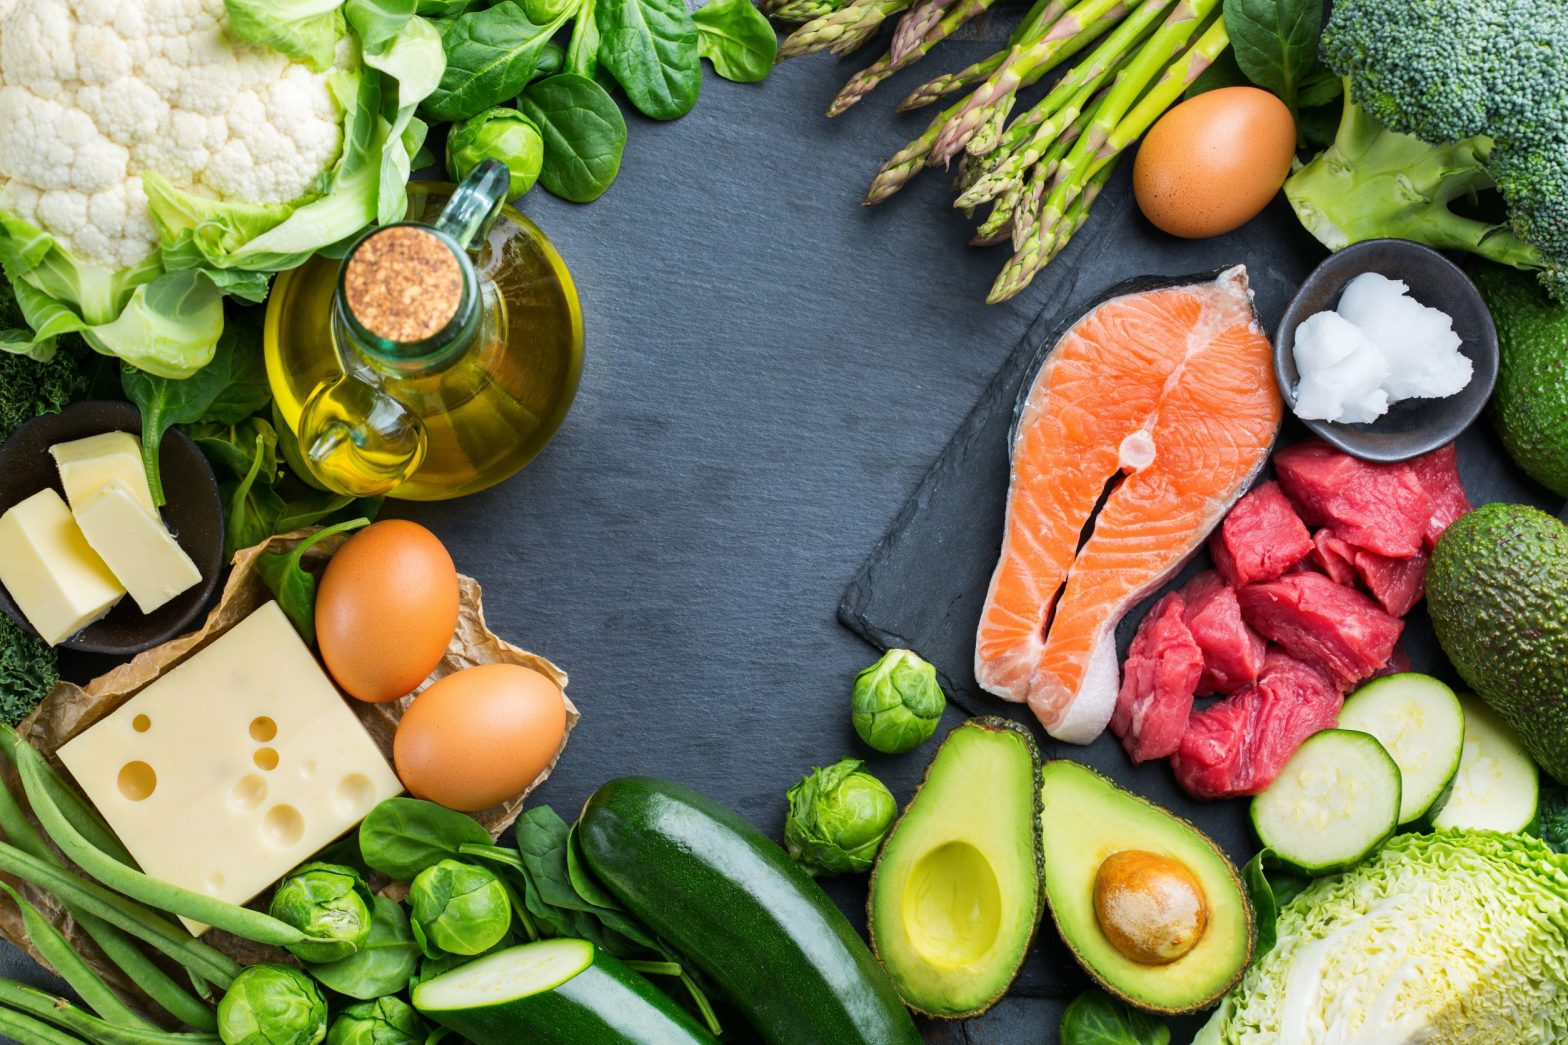 Picture of multiple ketogenic foods, including fish, read meat, avocado, oil, and zucchini